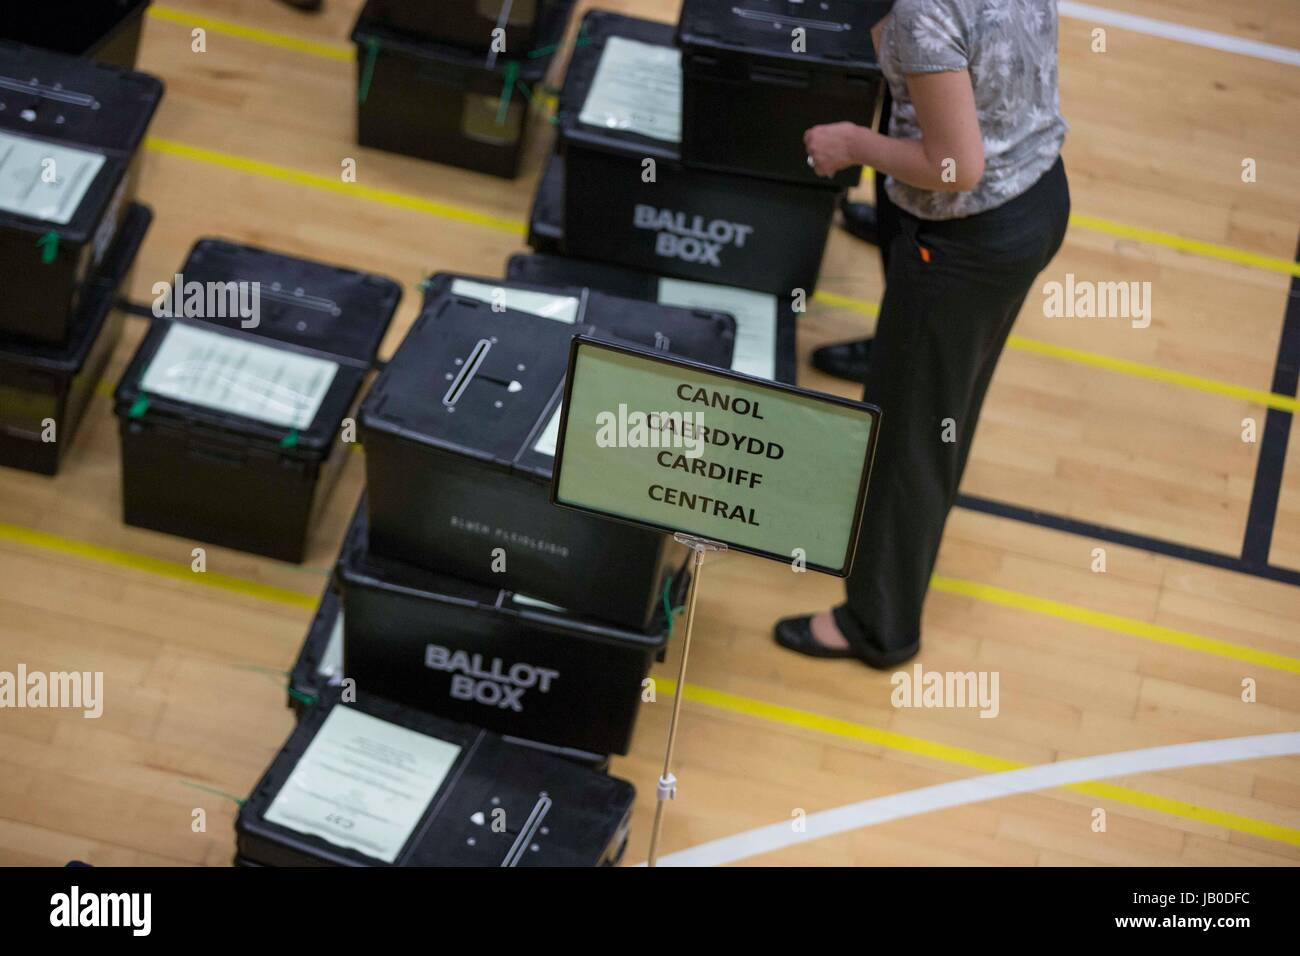 Cardiff, Wales, UK. 08th June, 2017. Cardiff Central Ballot Boxes as general election 2017 vote counting begins - Stock Image